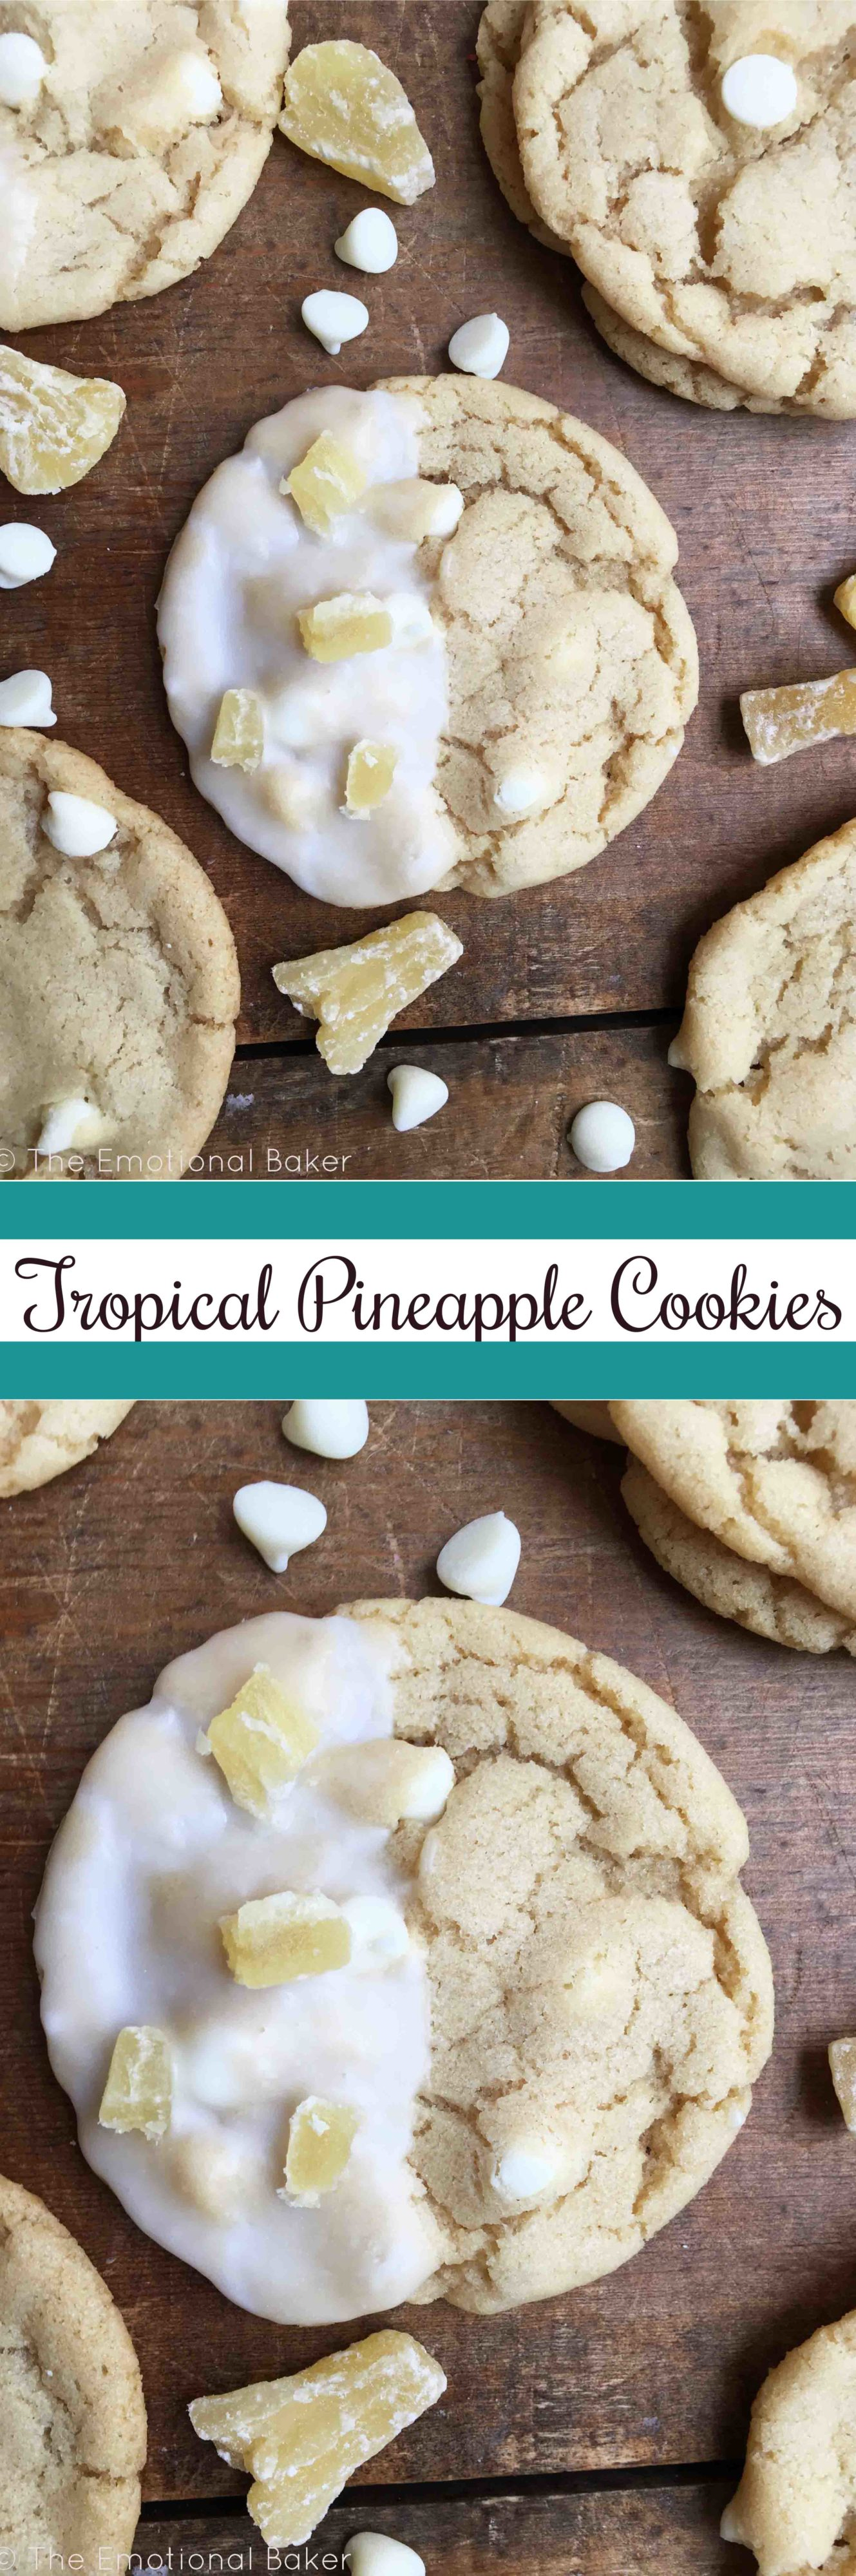 Tropical Pineapple Cookies